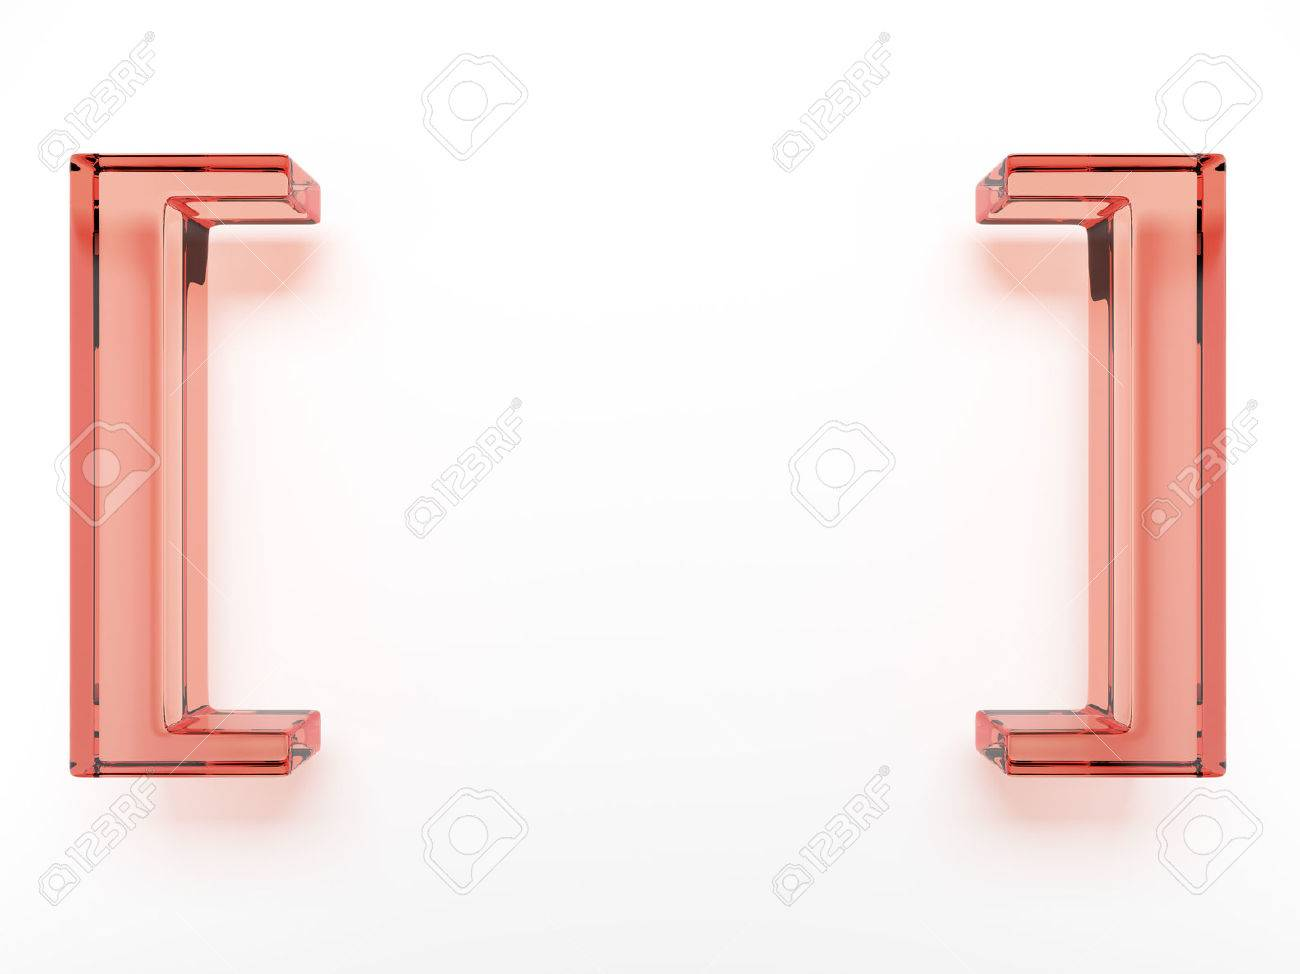 Spelling glass brackets  isolated on a white background Stock Photo - 22401662